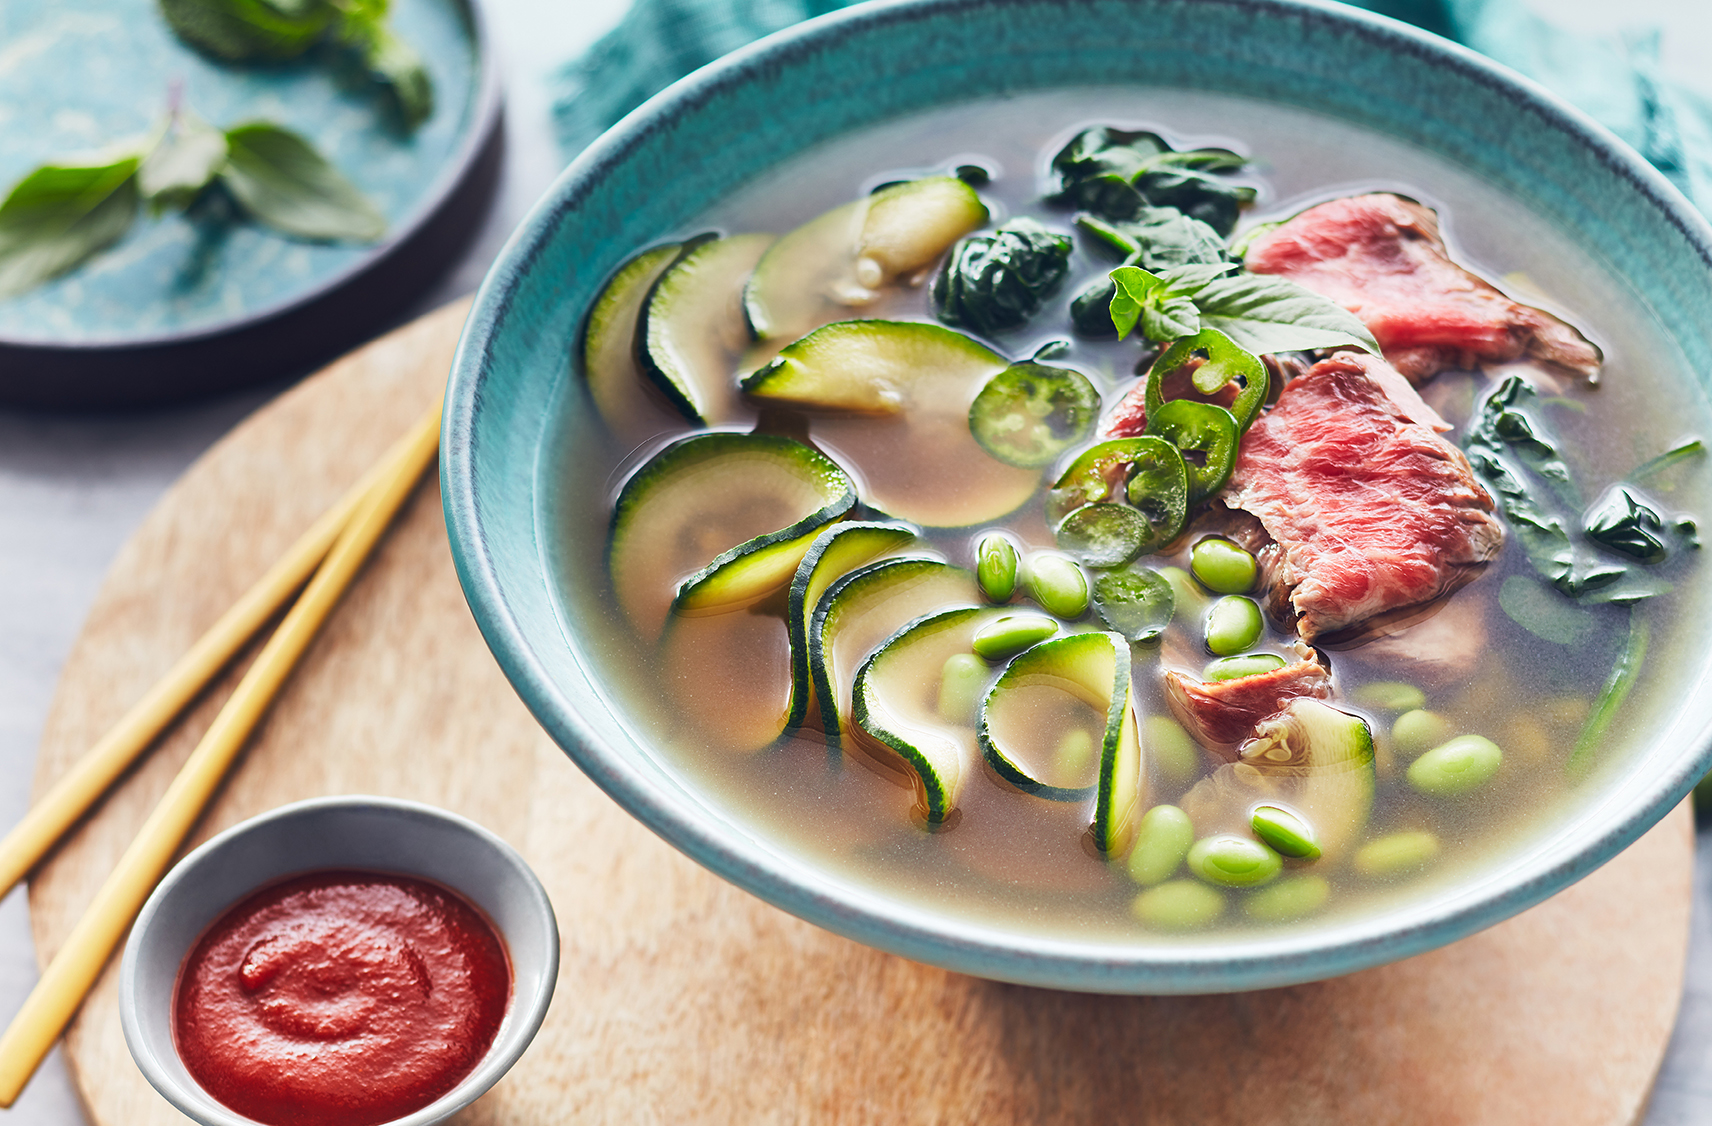 Chopsticks rest by a bowl of broth with zucchini noodles, red beef and veg